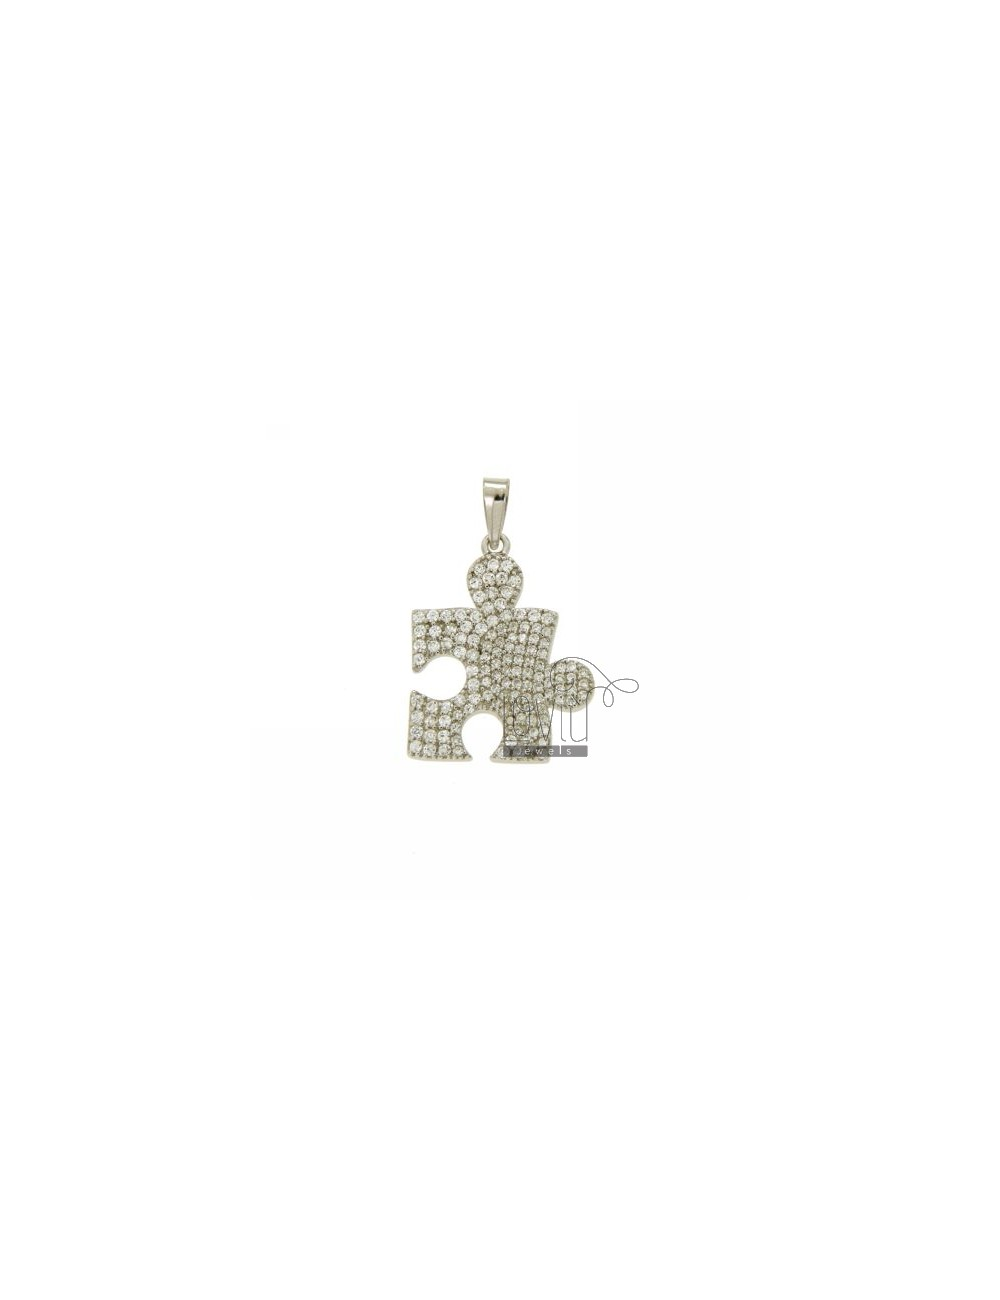 PUZZLE Pendant 23x18 MM IN AG TIT 925 ‰ AND ZIRCONIA